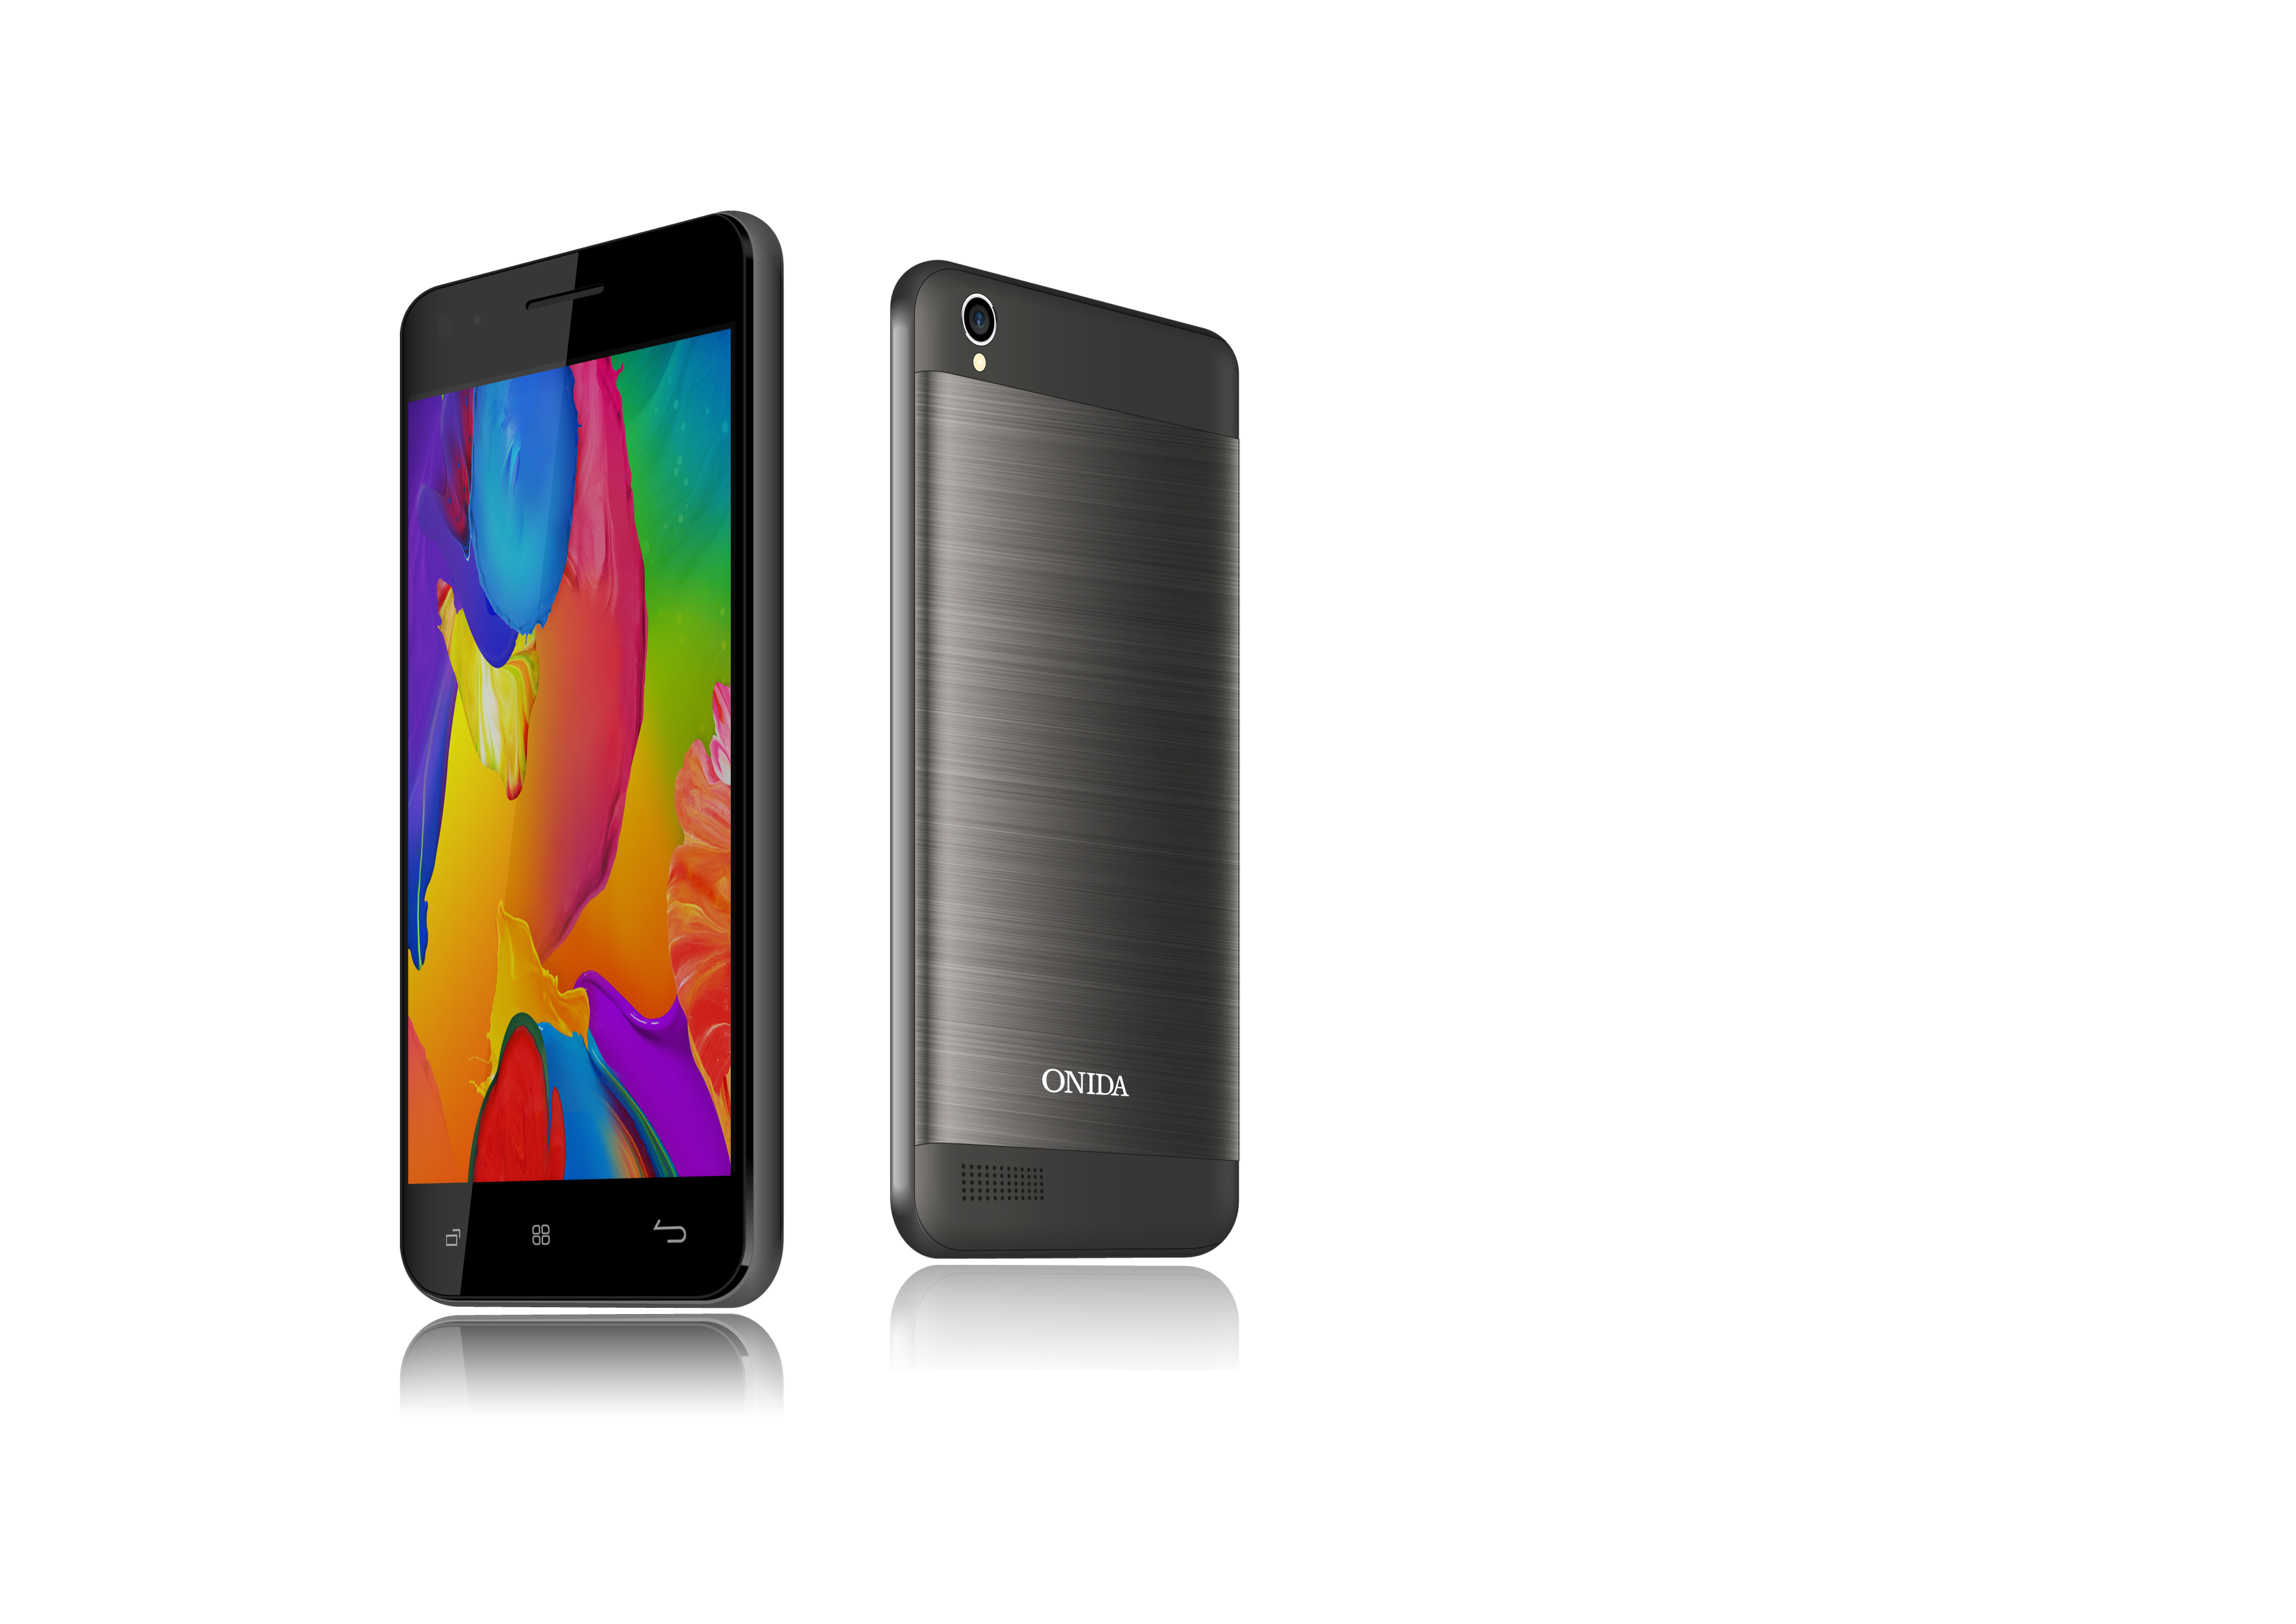 Onida launches the i455 smartphone exclusively on ebay.in